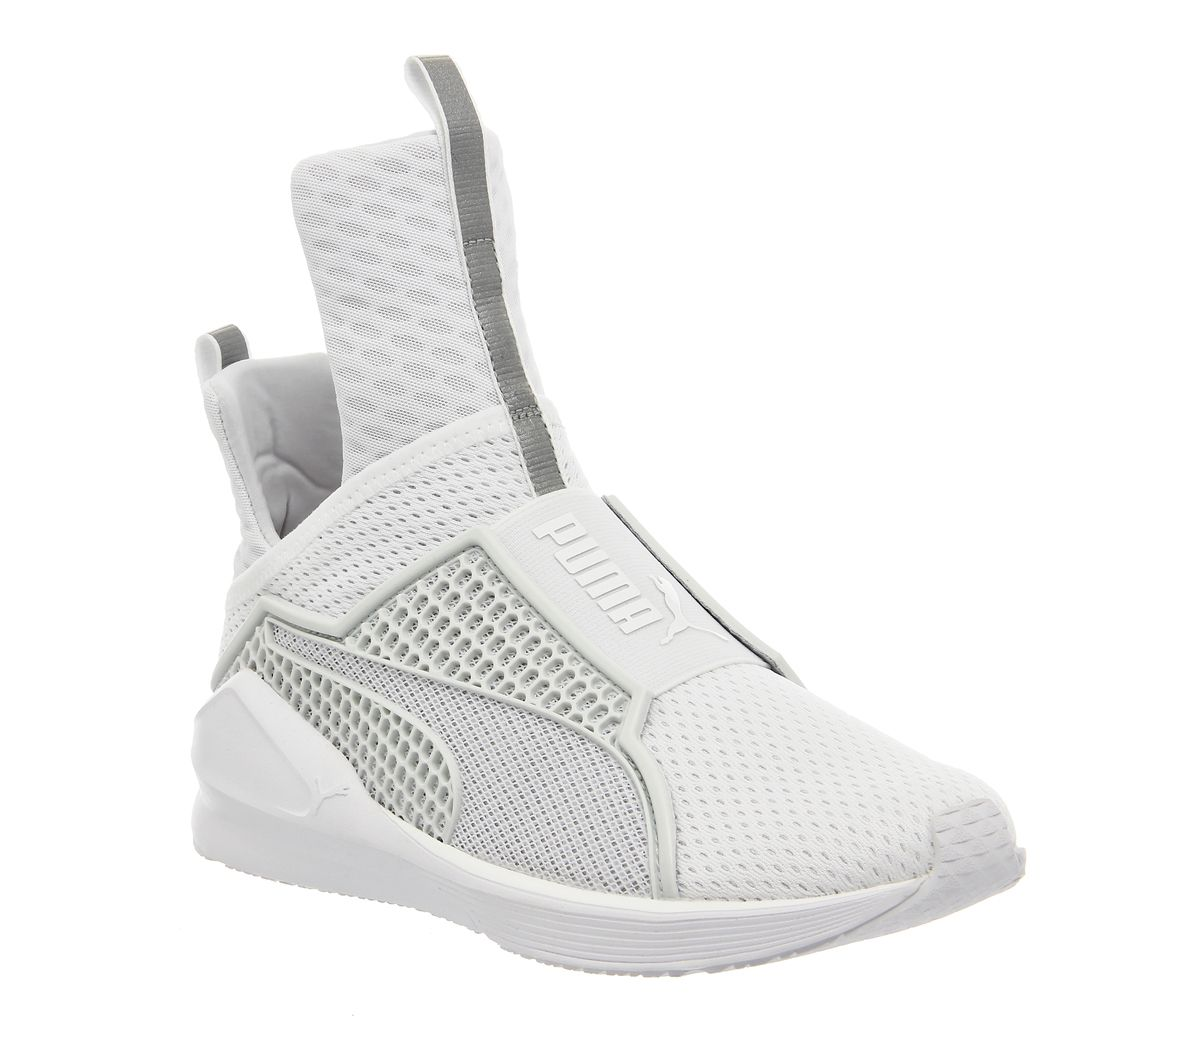 the best attitude 0d4b5 53b4c Puma Fenty White - Hers trainers